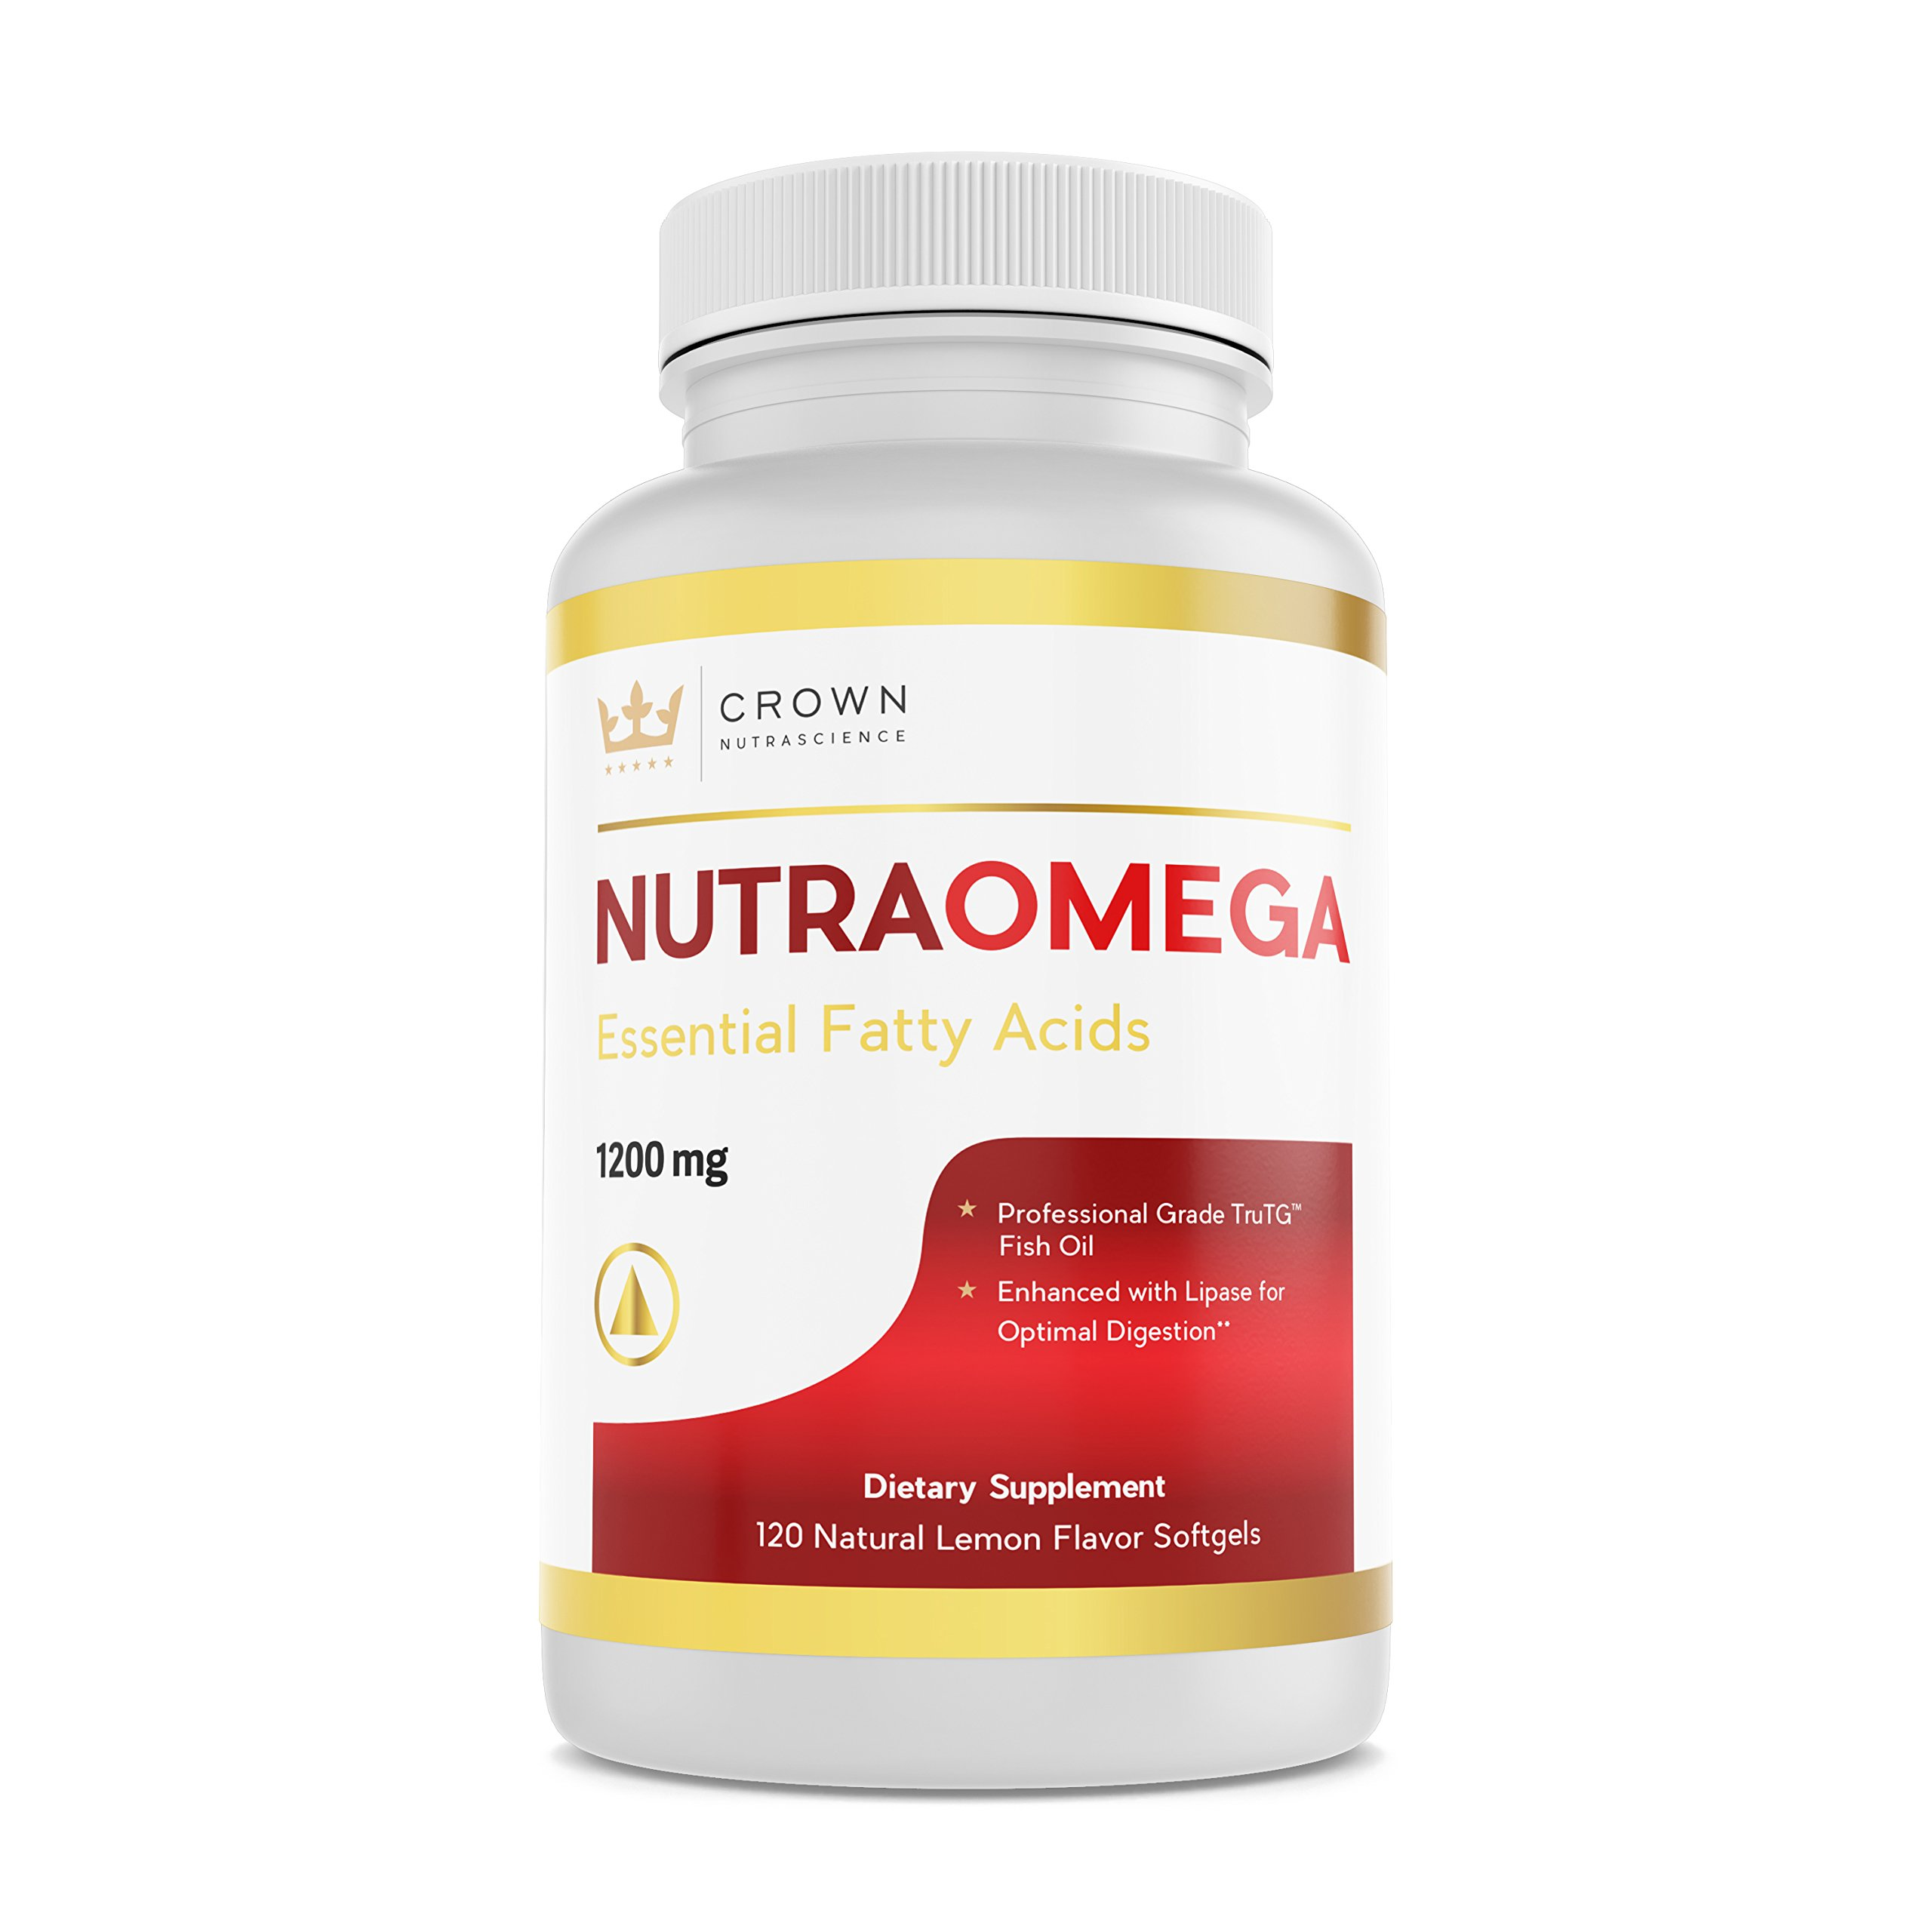 Omega 3 Fish Oil 1200mg Per Serving, 120 Softgels, Crown NutraScience - NutraOmega Burpless Triglyceride (TG) Form for Heart Health, Cognitive Function, Joint Support, and Eye Support